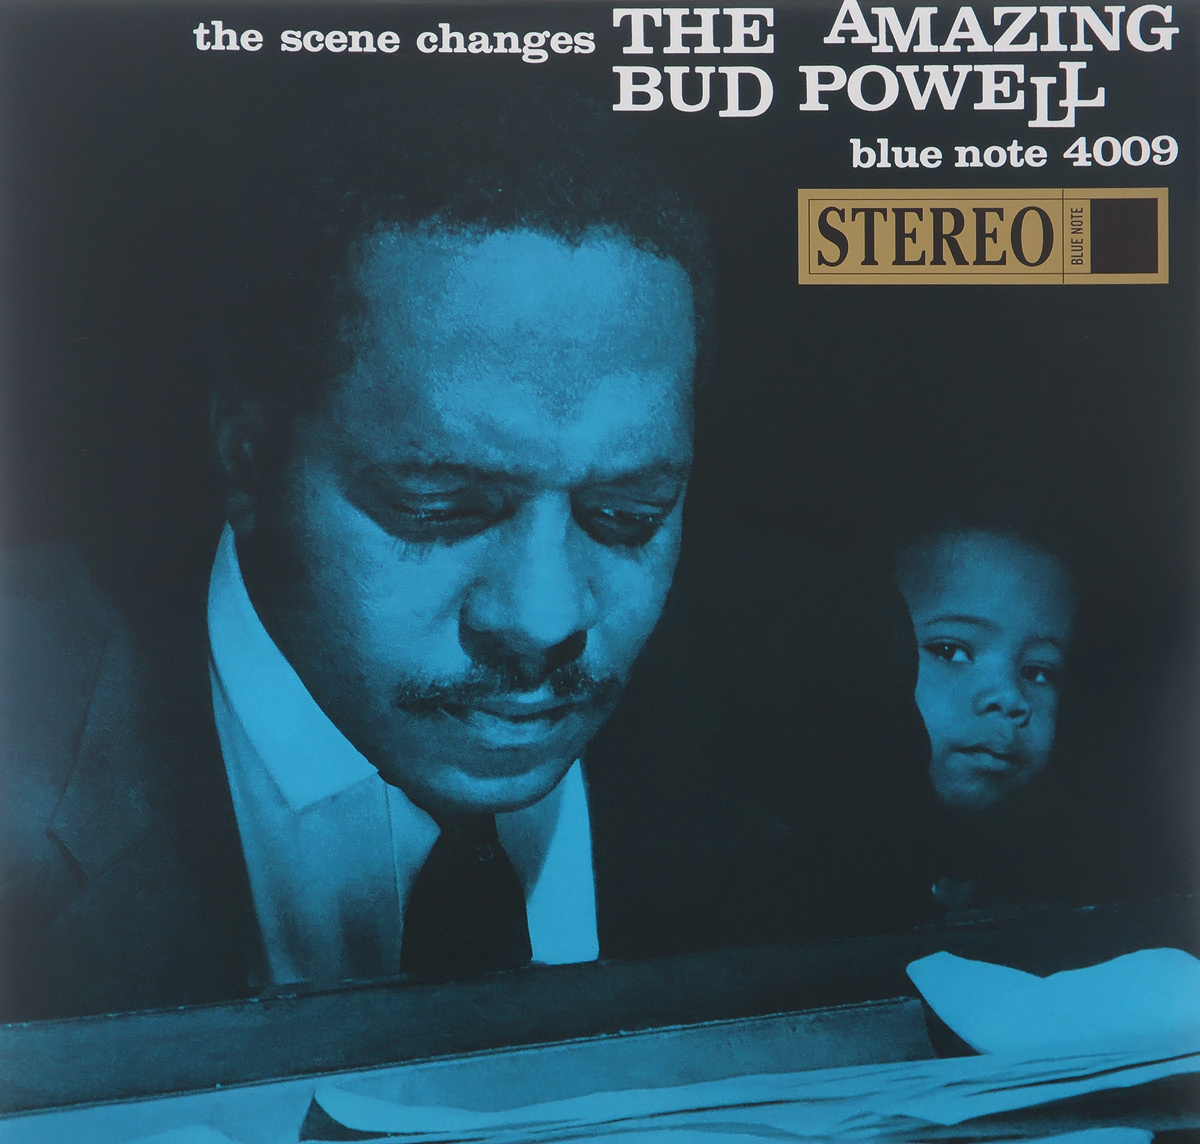 Бад Пауэлл Bud Powell. The Scene Changes (LP) quatro scott powell quatro scott powell quatro scott powell deluxe edition 2 lp